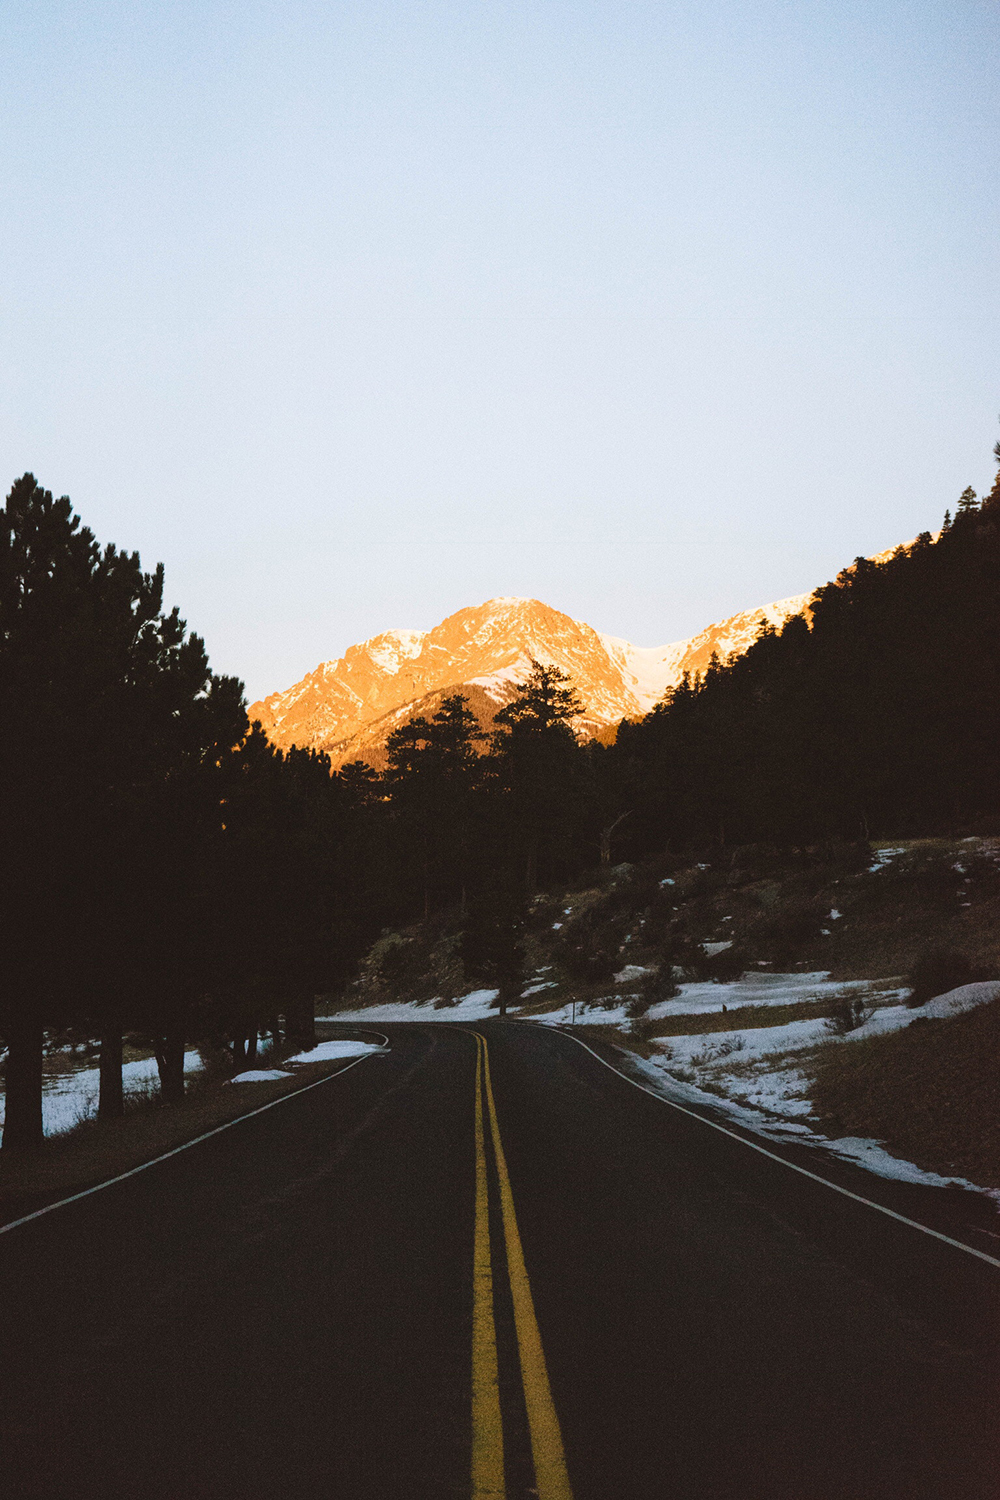 Best cities to live in Colorado: setting sun on mountain with snow adorning the highway